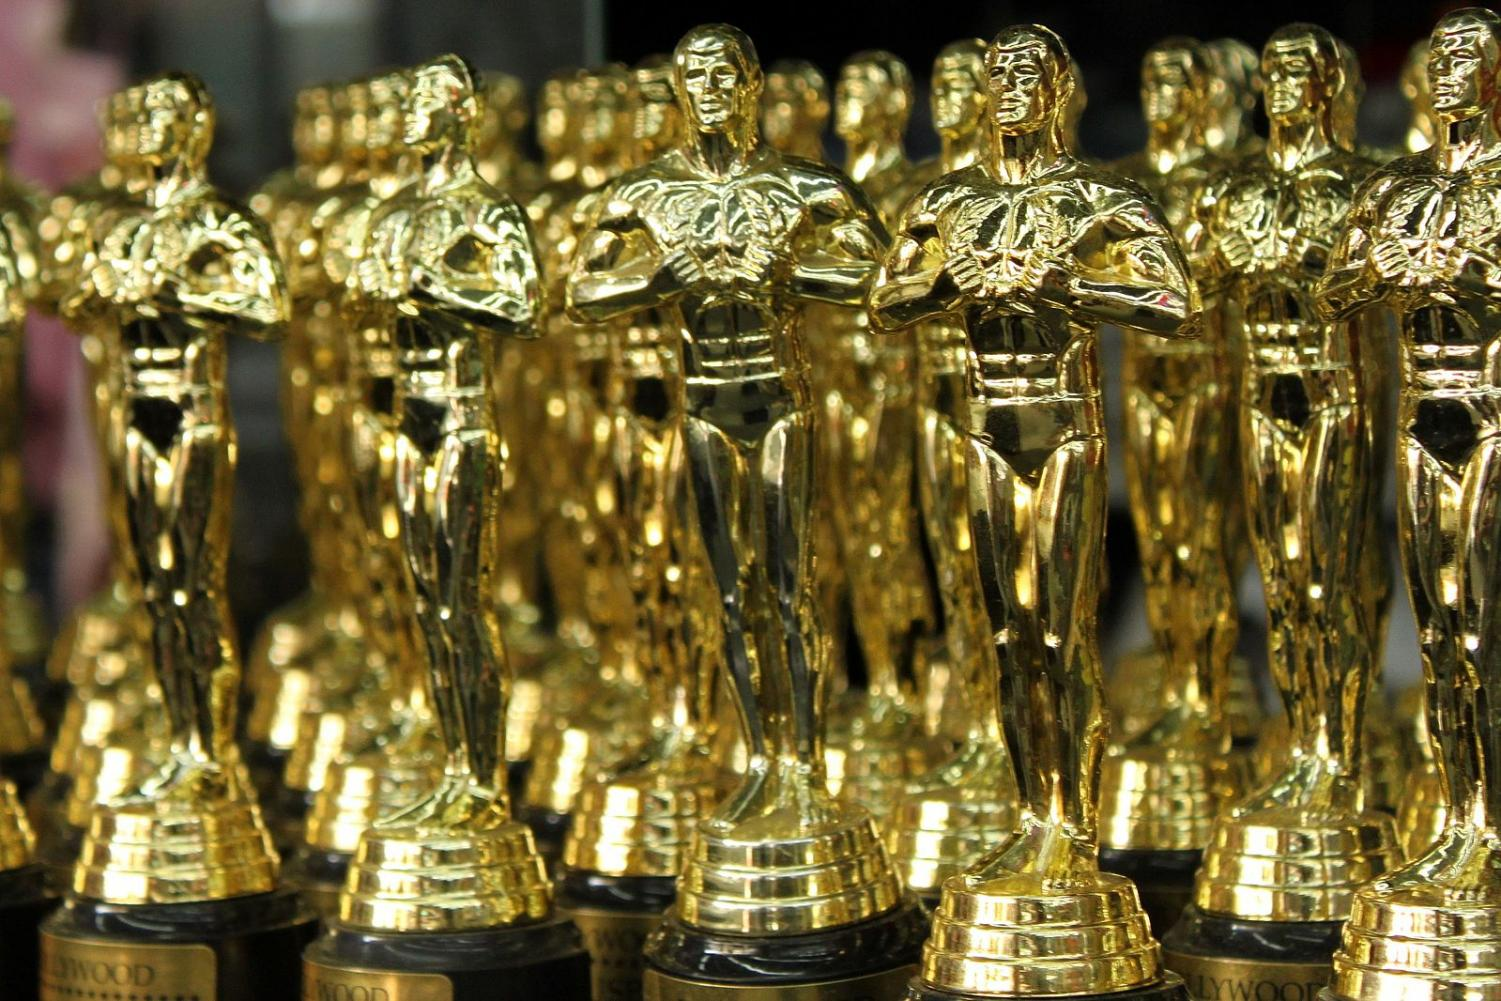 The 94th annual Oscars will take place in Los Angeles, CA on February 24, 2019